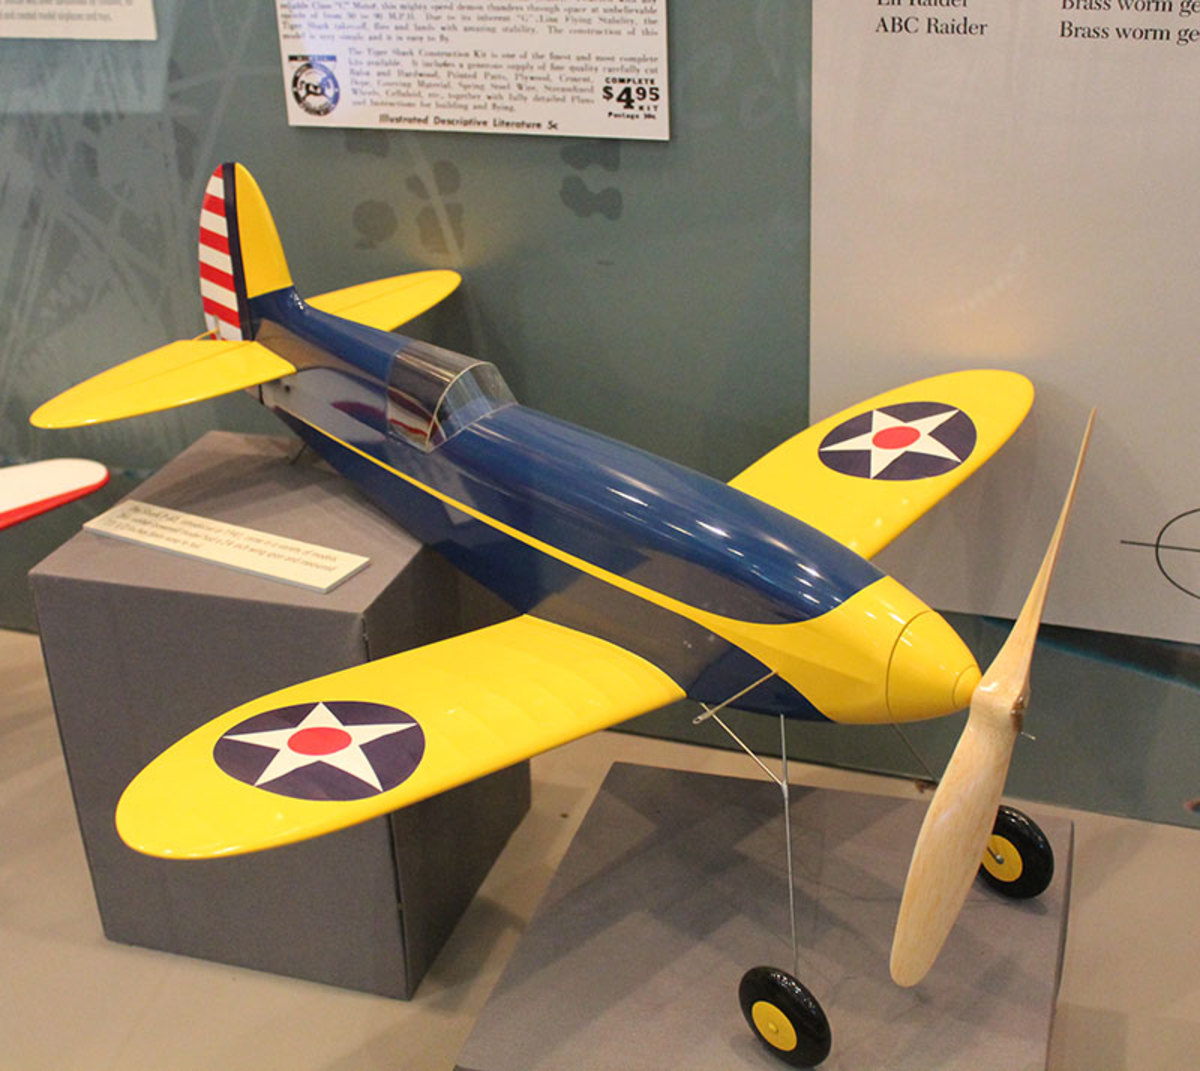 Vintage Model Aircraft | Vintage Toys | The end of an era of an American Icon